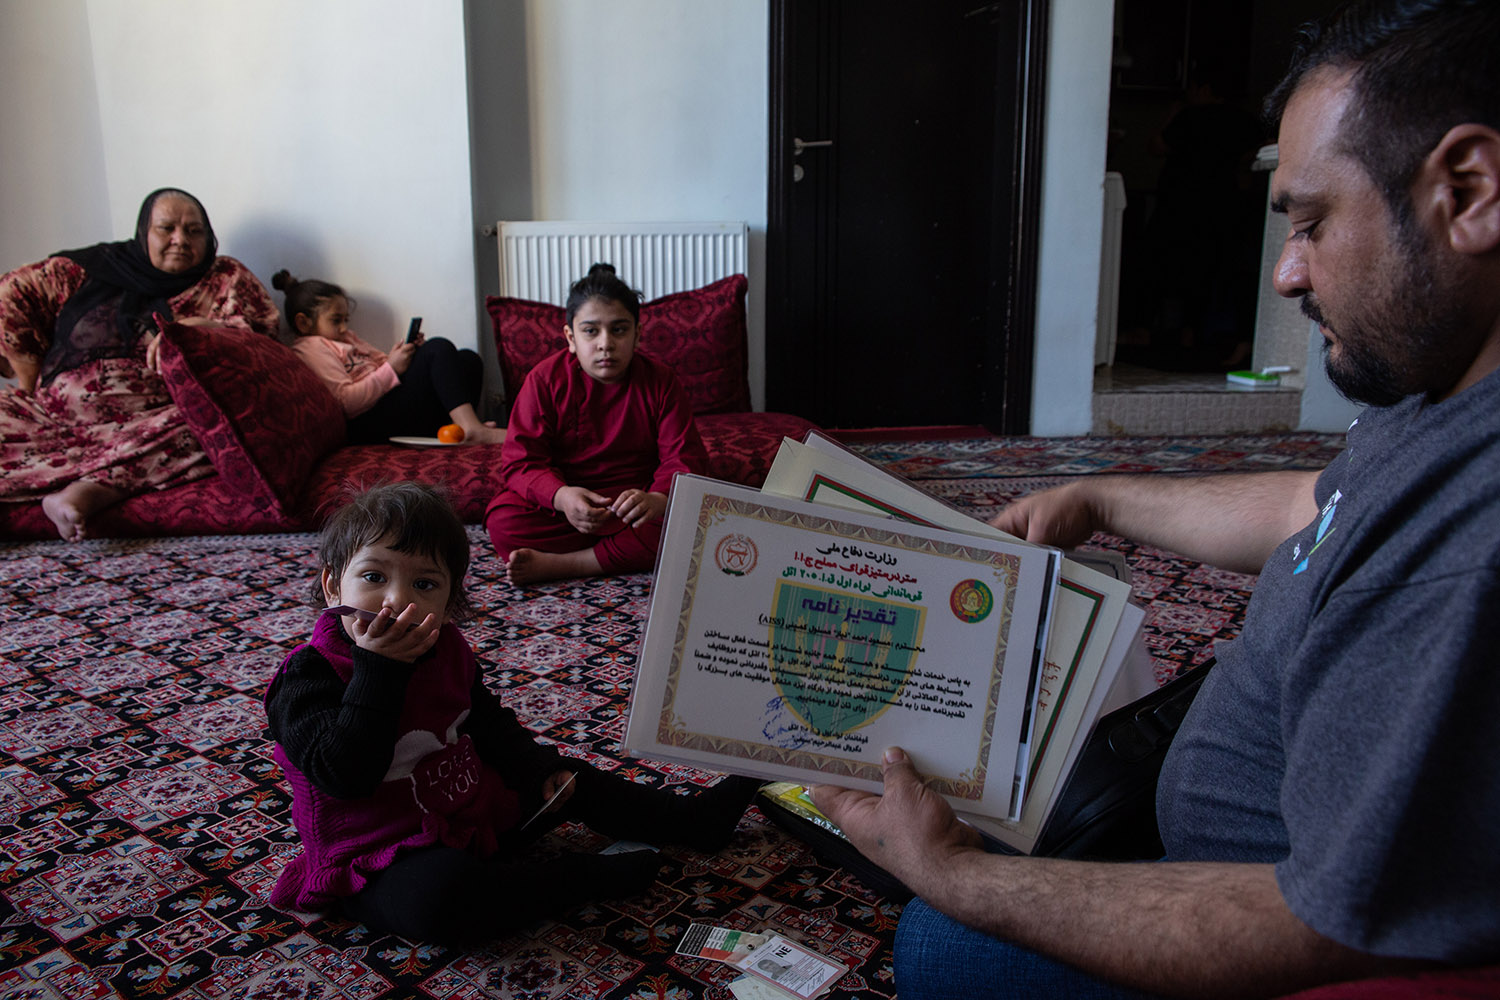 Massoud Ahmad Niaz sits at his home with his family on Jan. 28.. Massoud, who worked for U.S. forces as a mechanic for many years says he doesn't feel safe anymore and has applied for a visa to Pakistan.